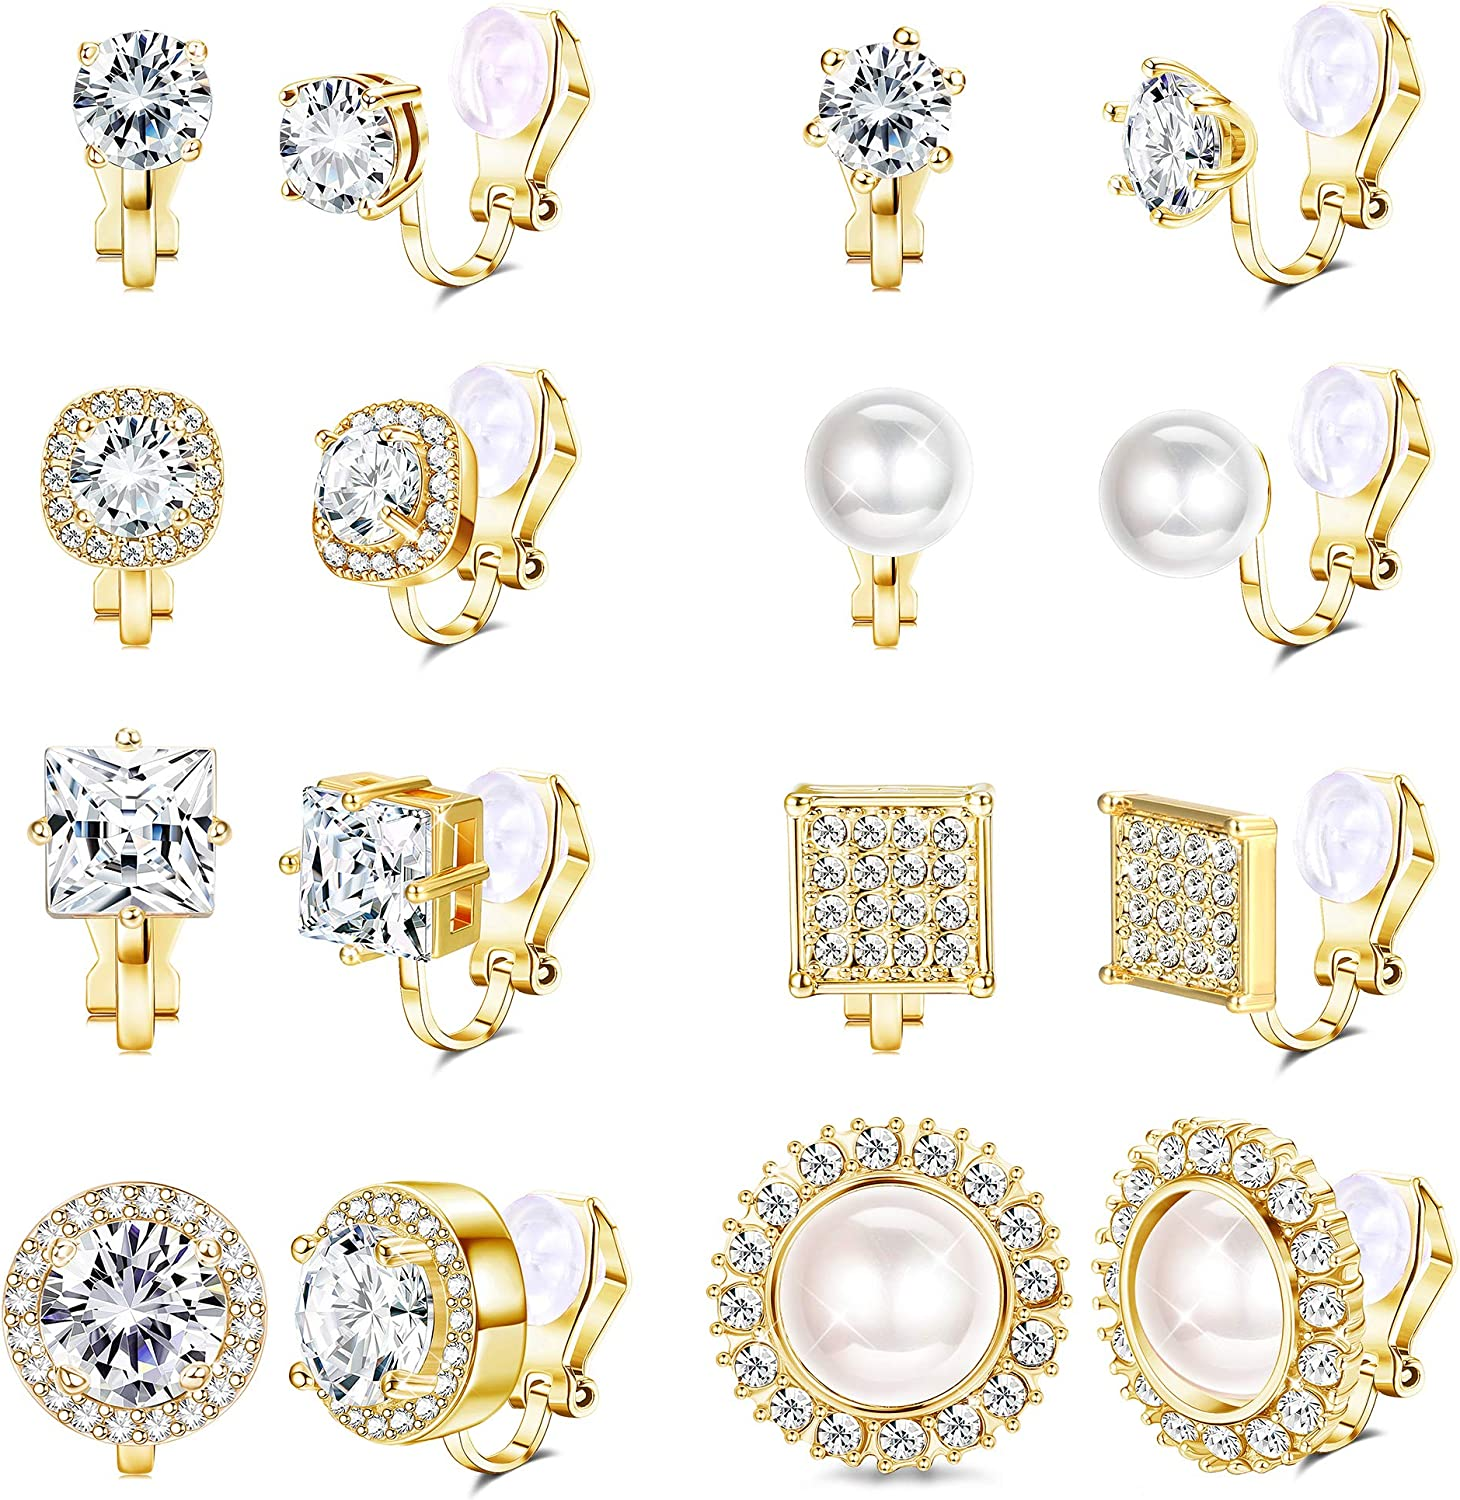 Thunaraz 8Pairs Cubic Zirconia Peal Clip On Stud Earrings For Women Simulated Diamond Halo Non Pierced Earring Womens Clip On Earrings Set for Anniversary